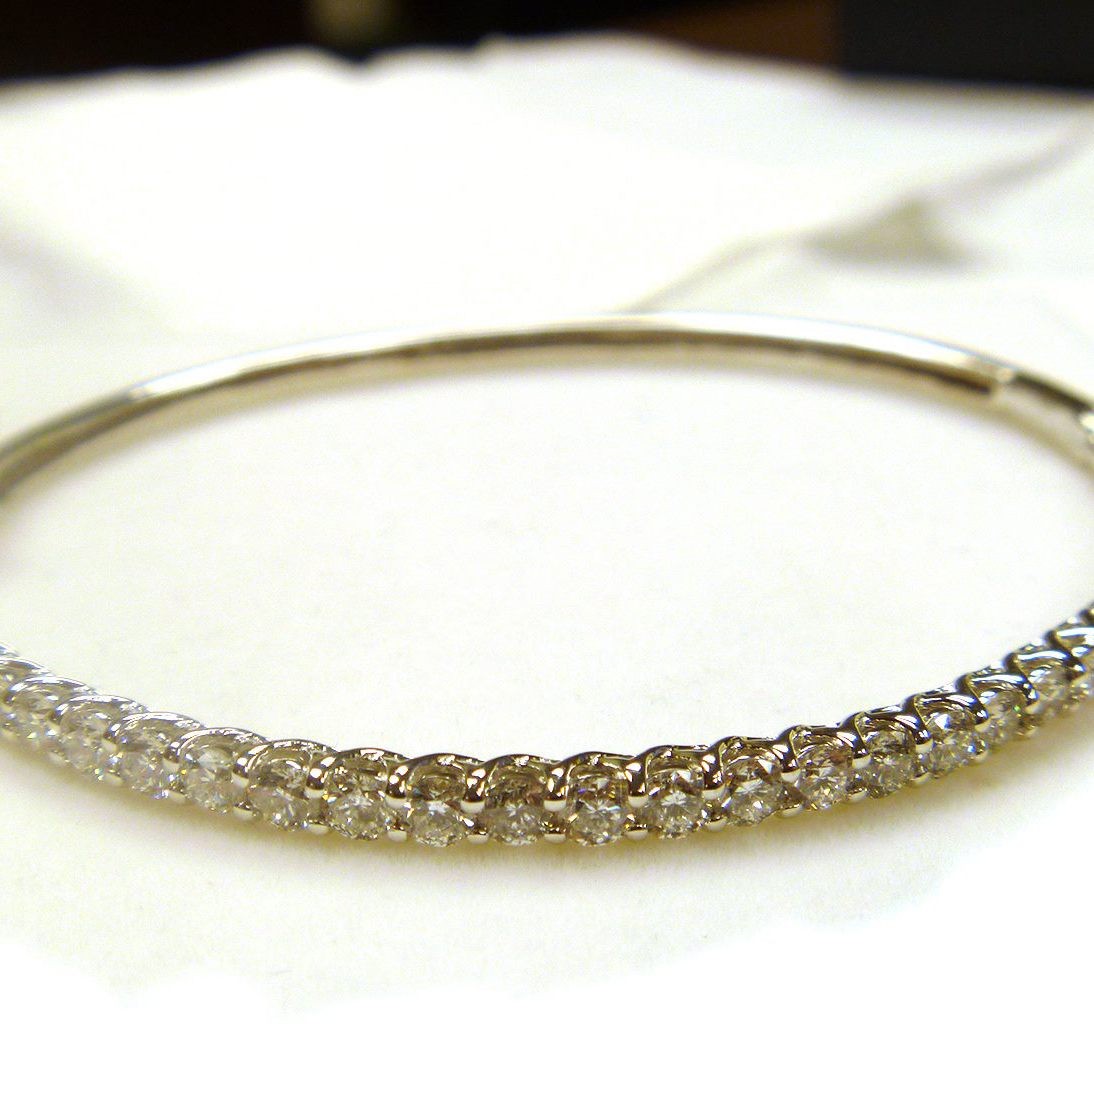 stone bangles wg flexible products diamond bangle bracelet switzerland little